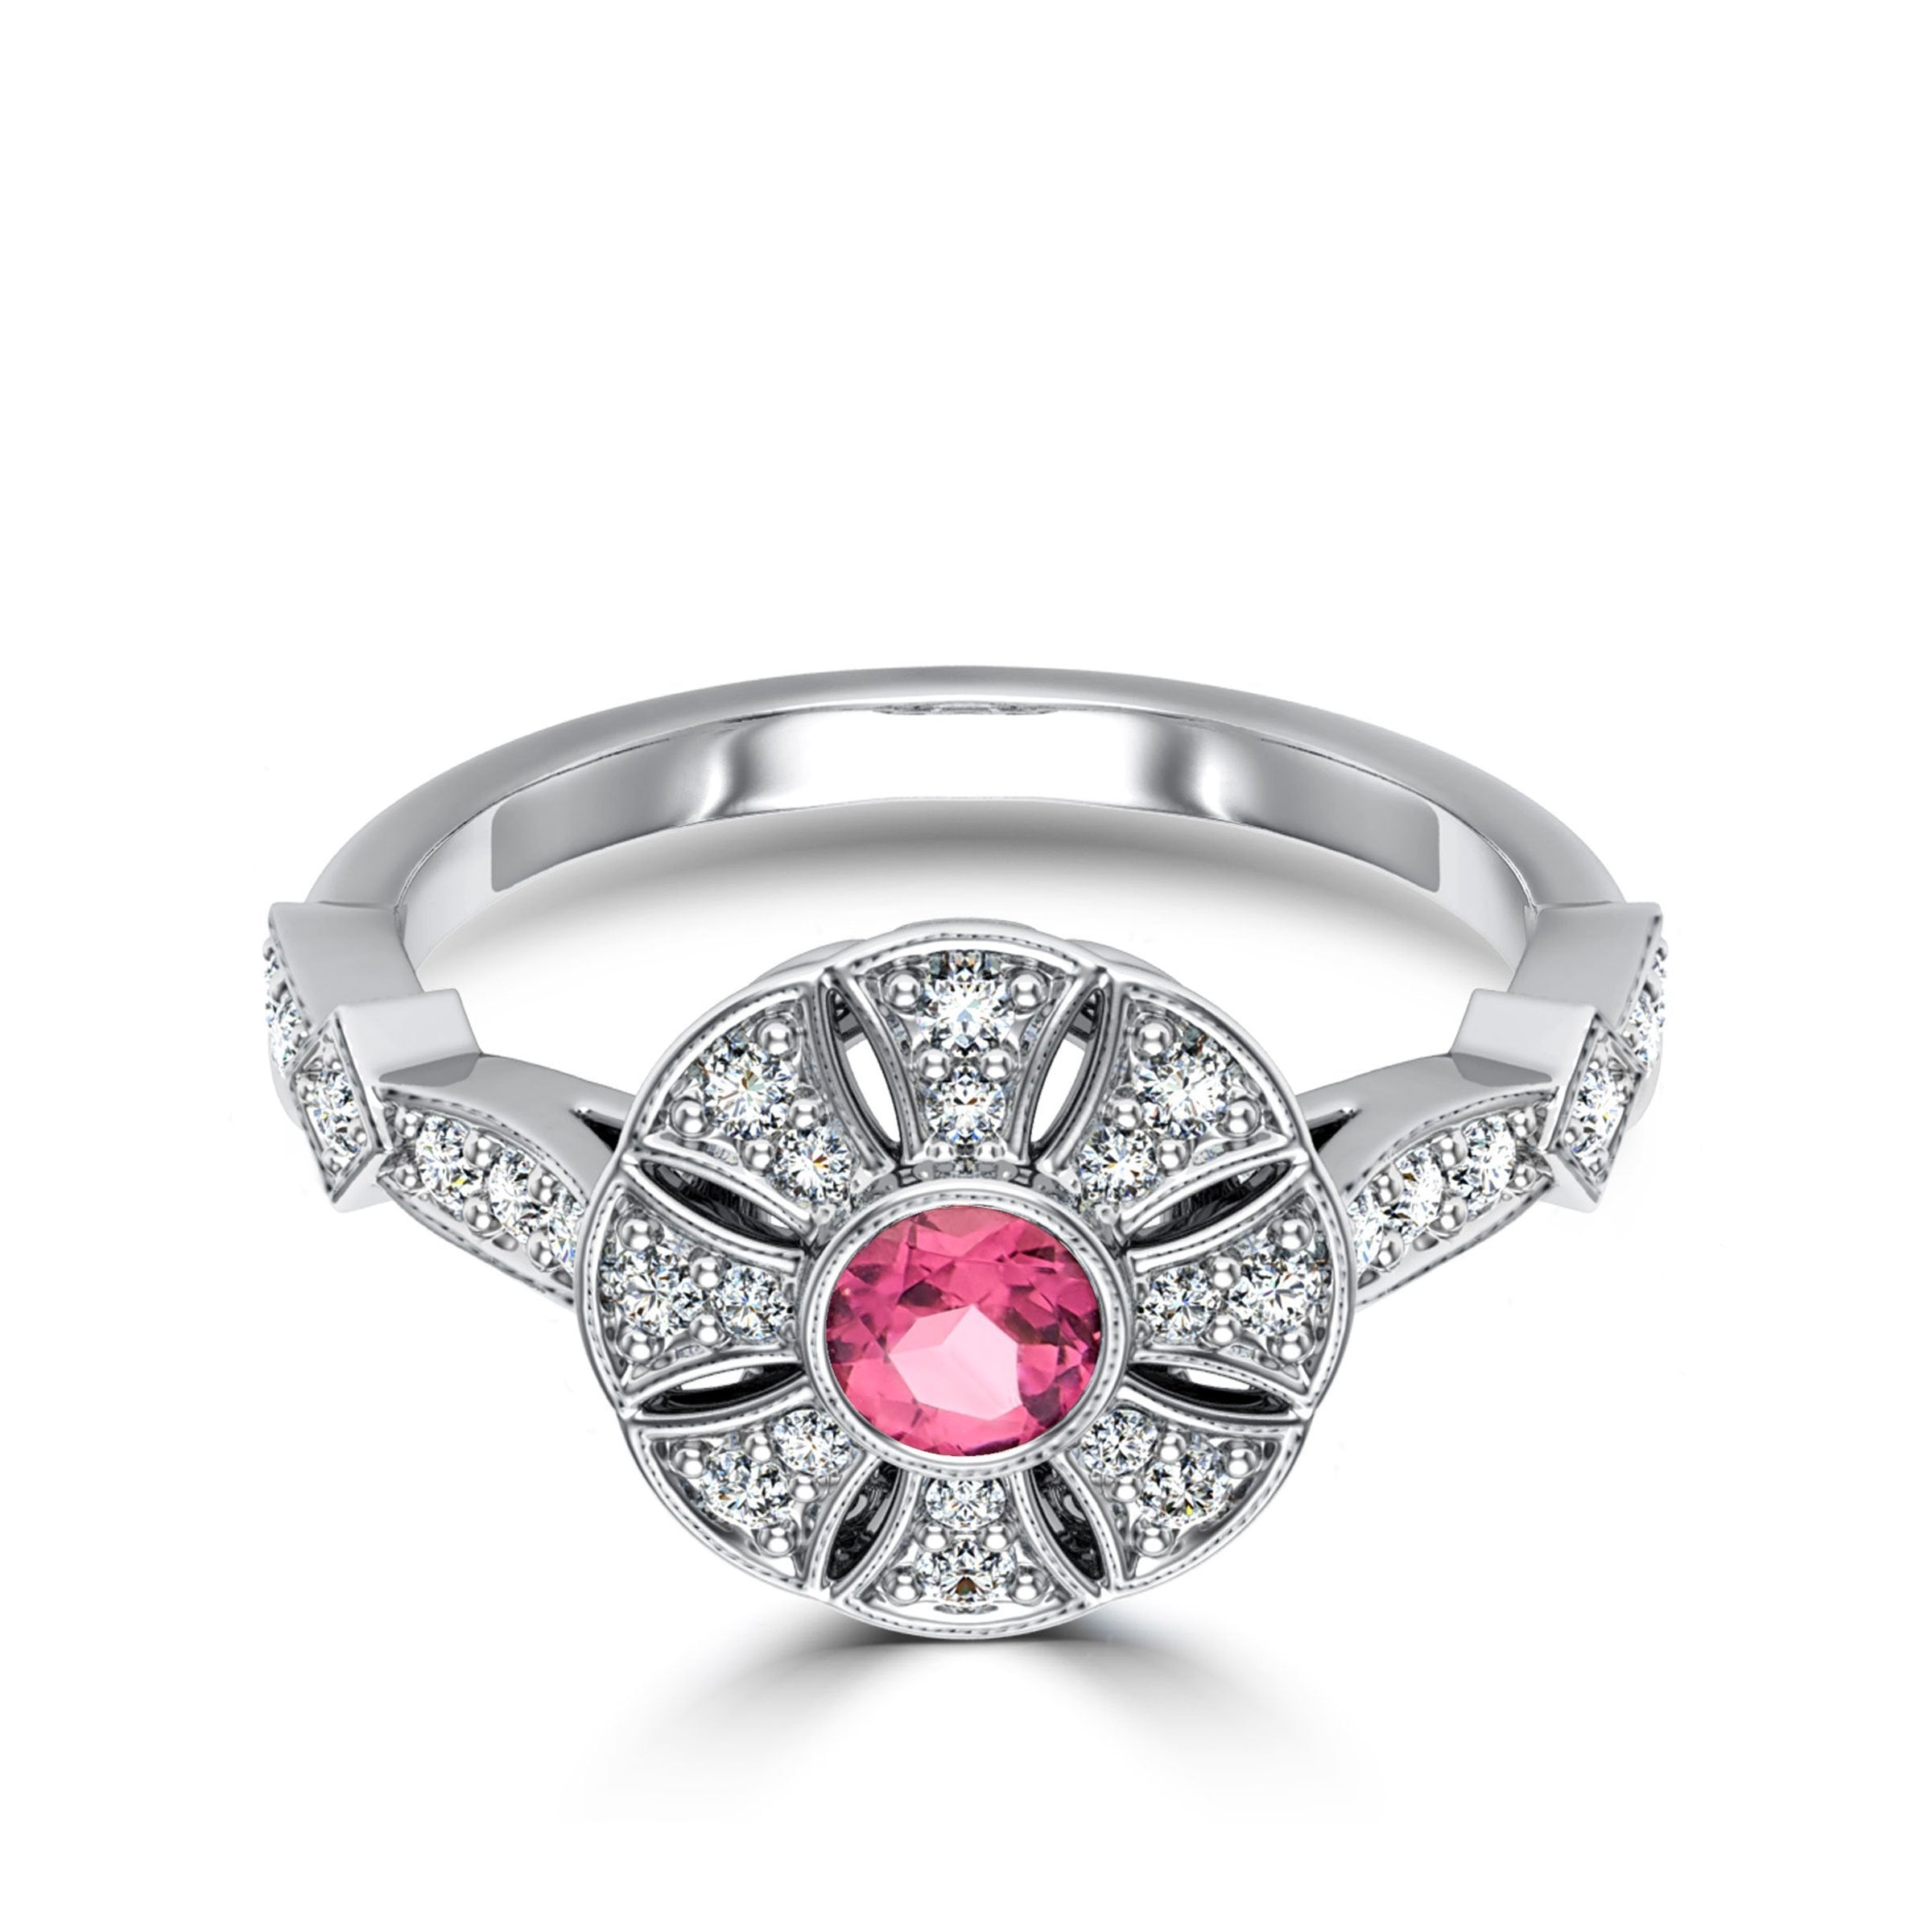 Pink Tourmaline & Diamond Flower Milgrain Ring in 14K White Gold